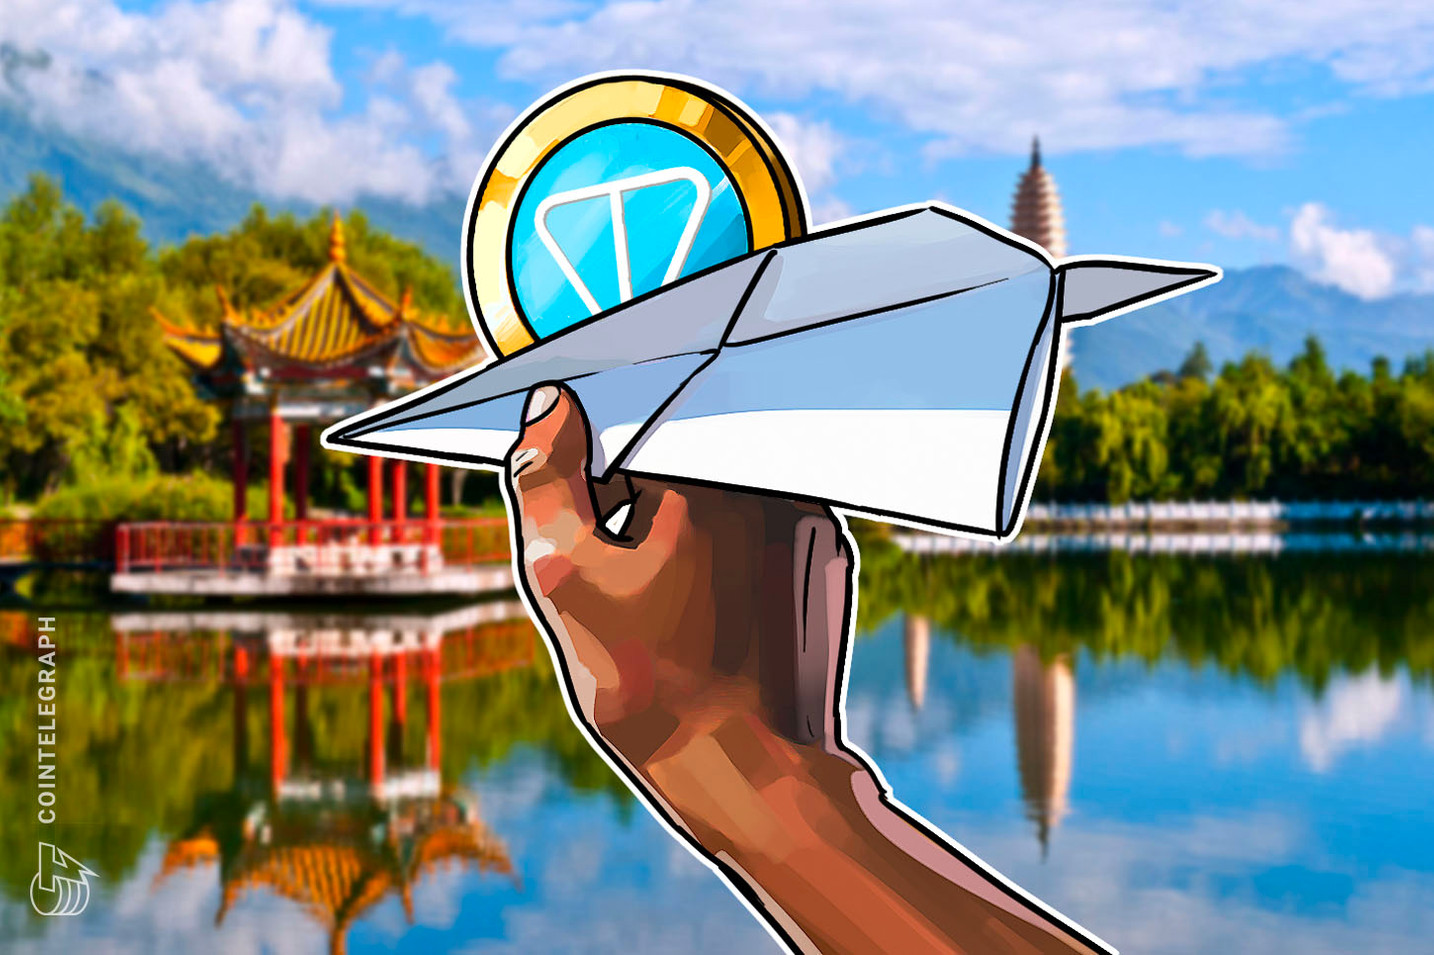 Chinese Company The9 Said to Be First Foreign Telegram ICO Investor